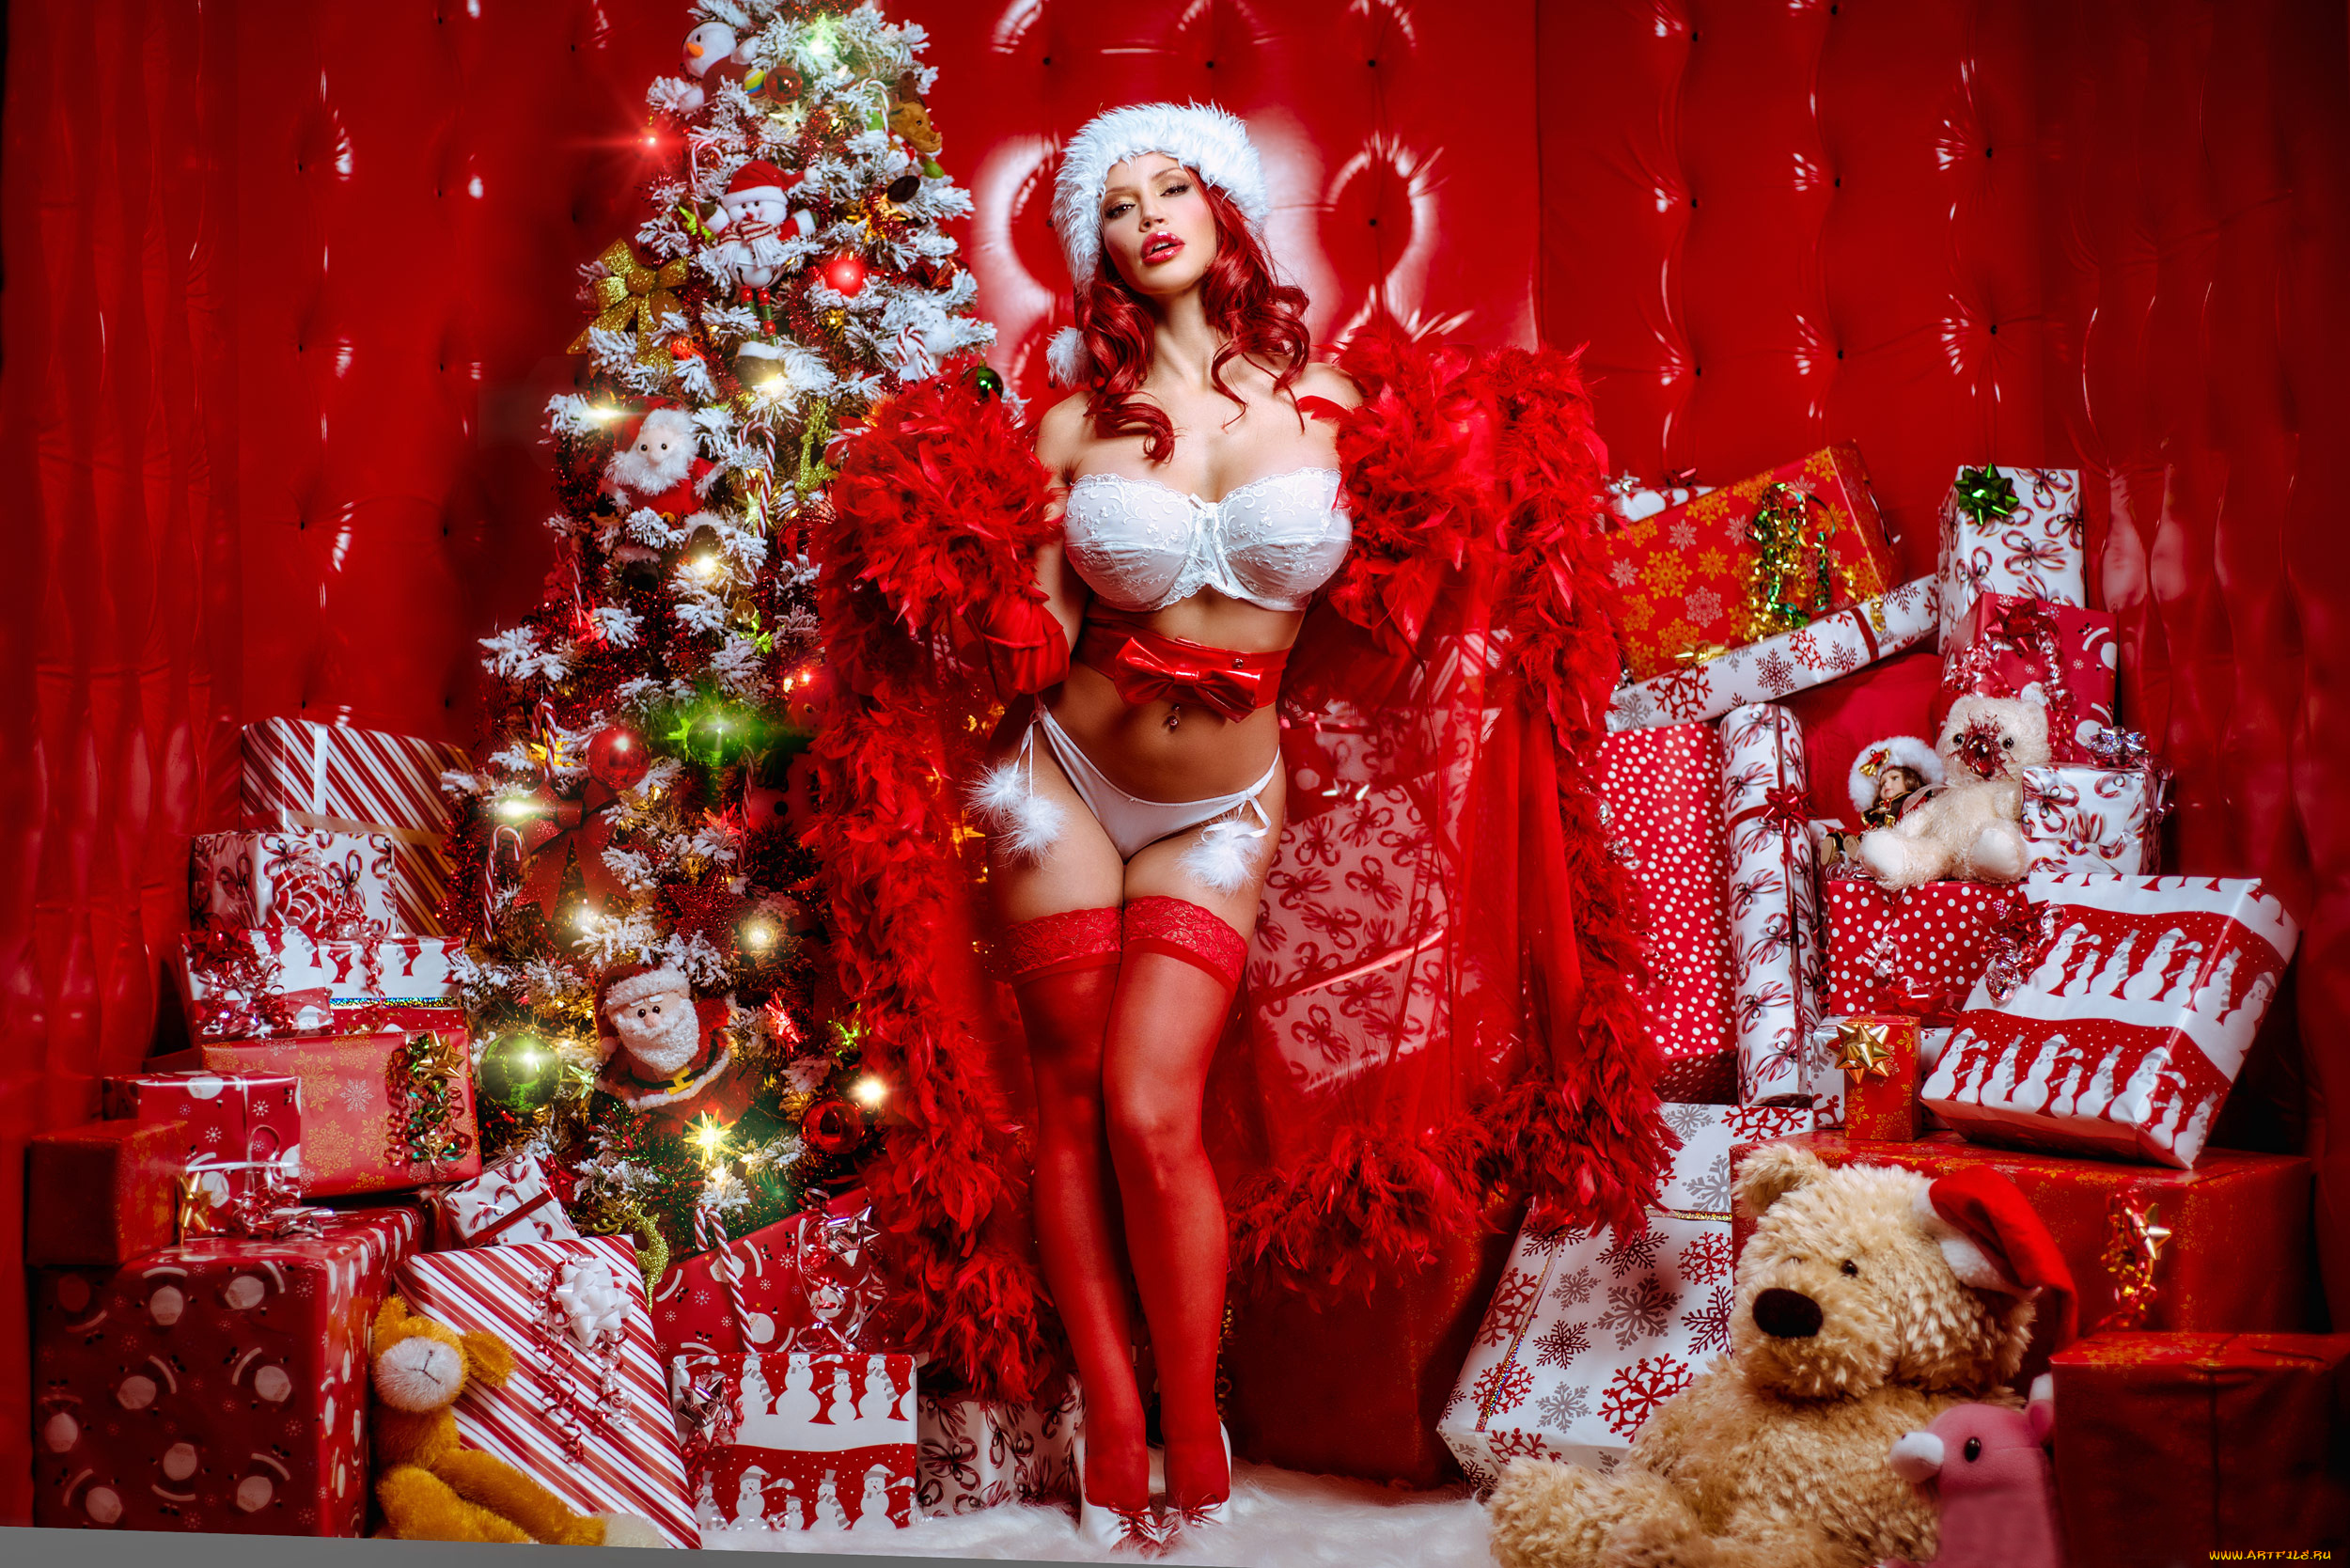 Trusted brunette babe is posing naked over big Christmas tree № 380920 без смс